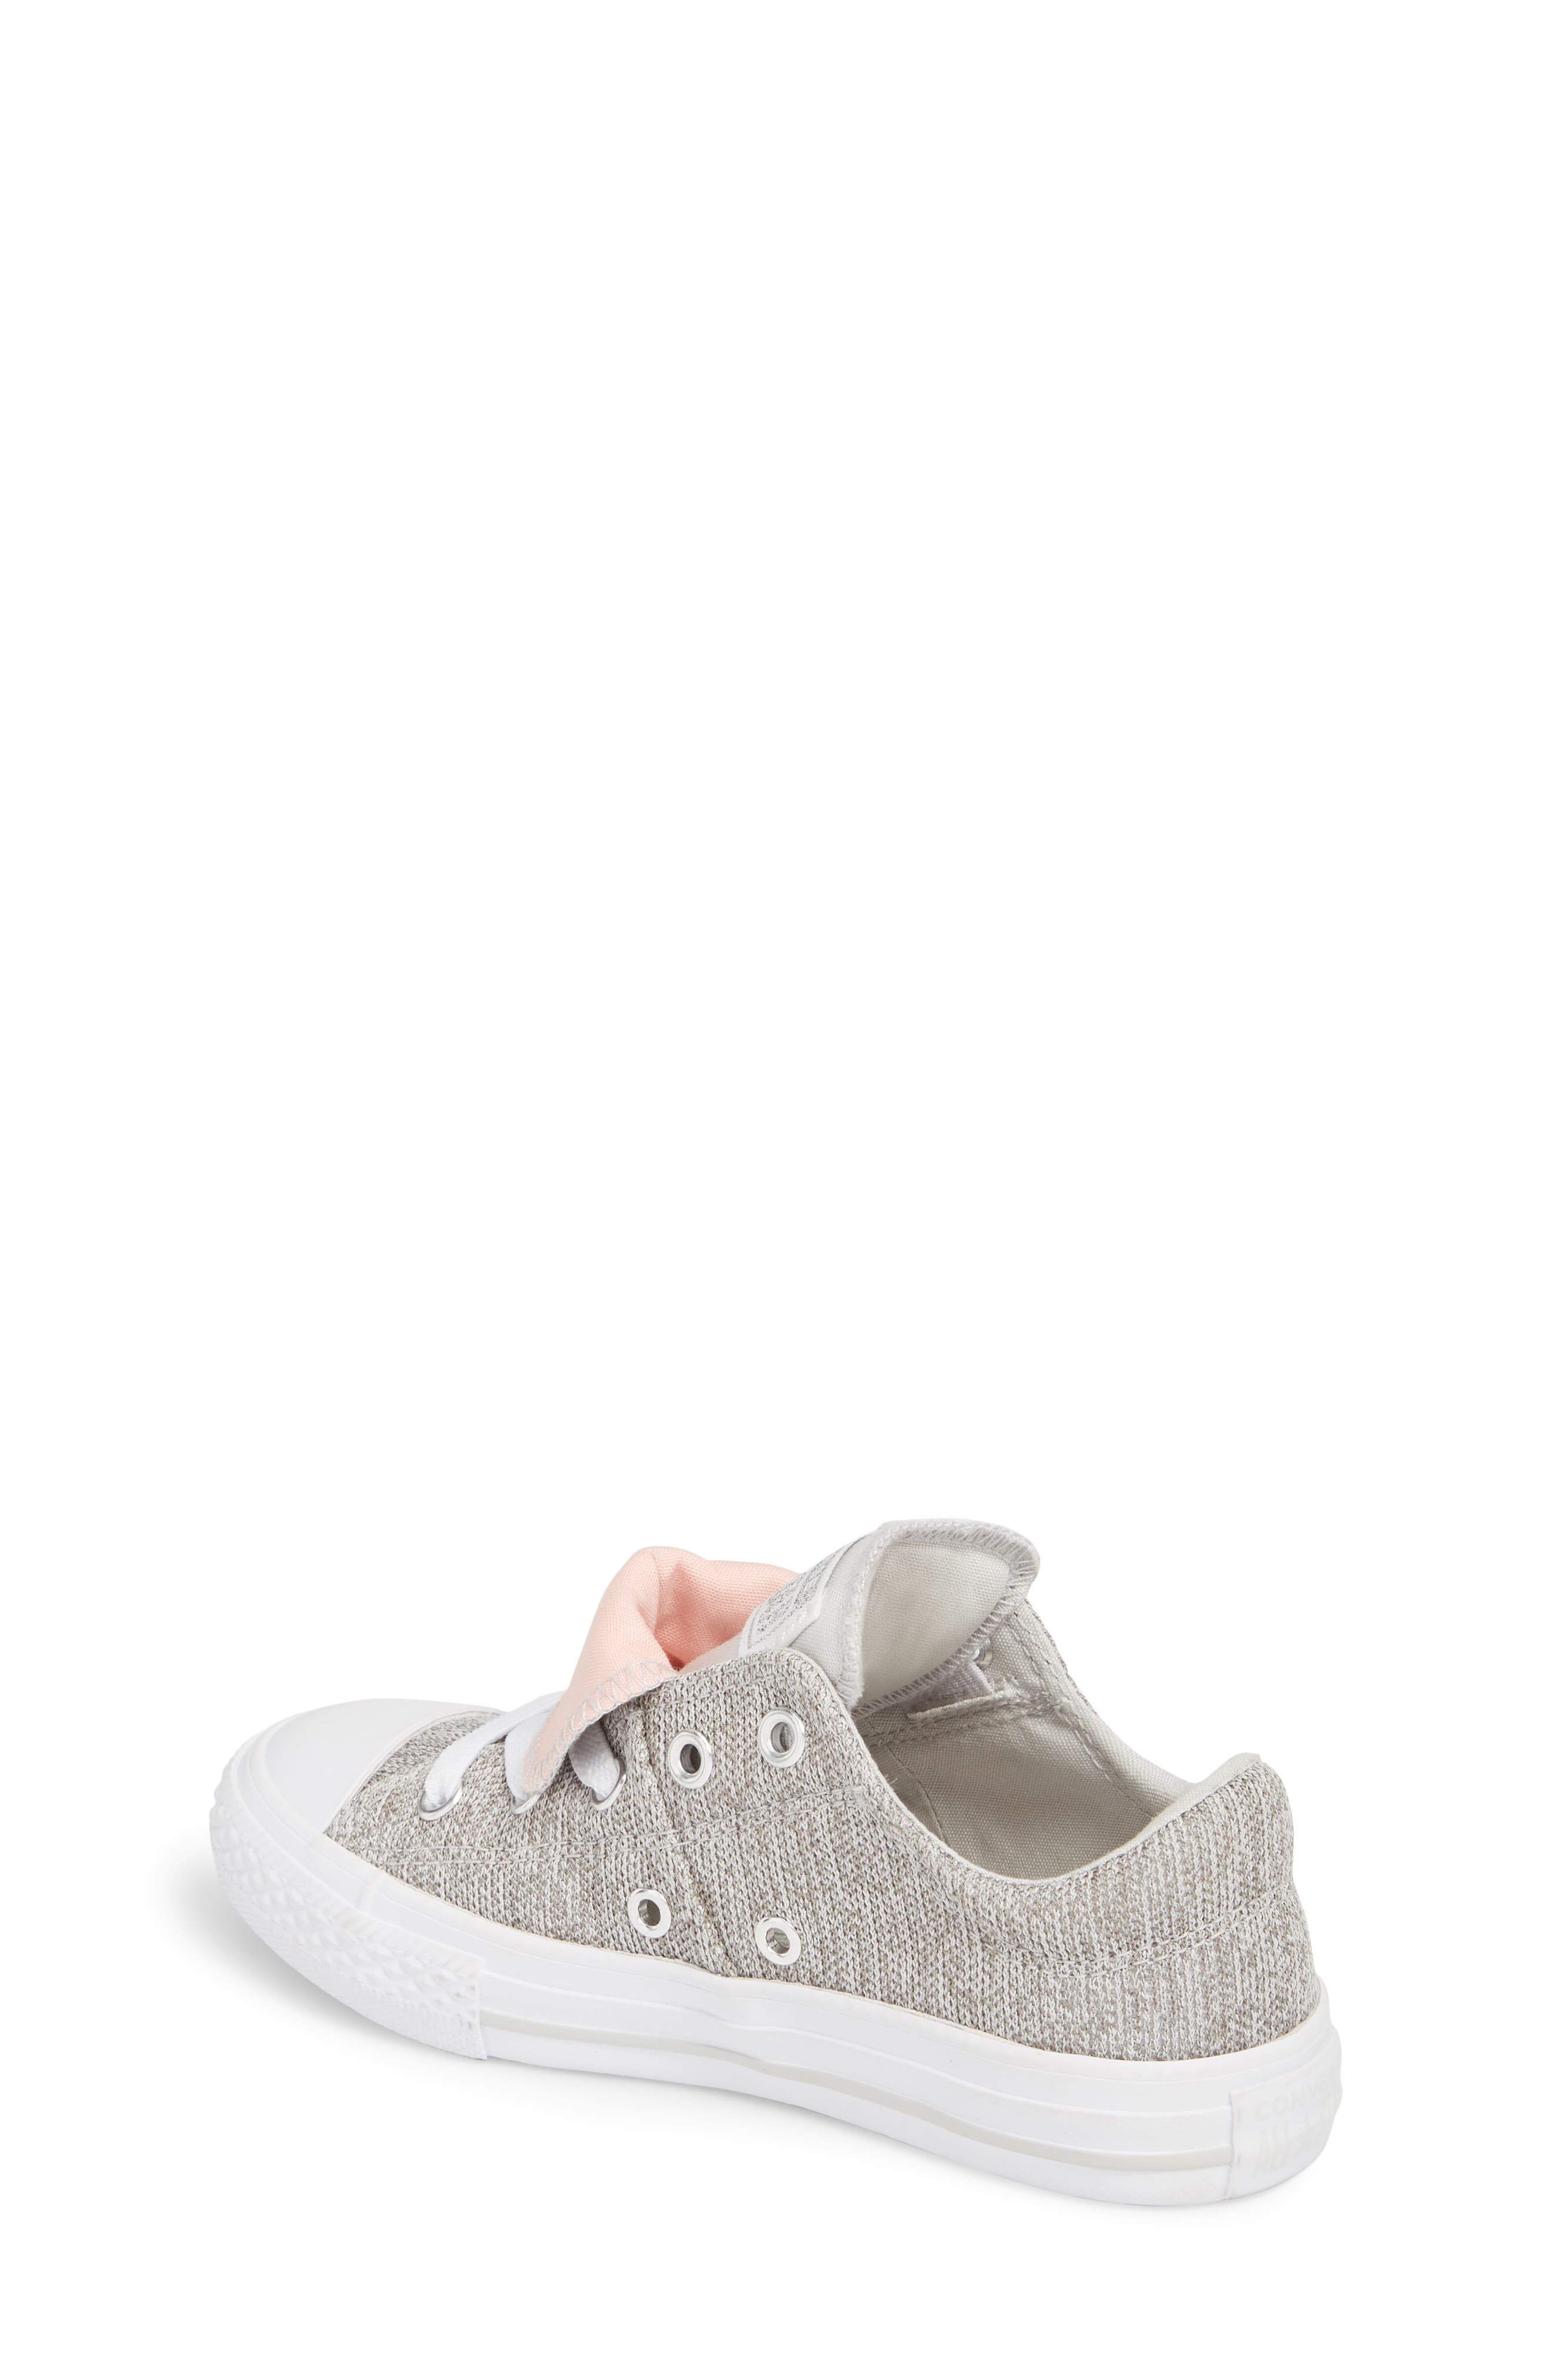 Chuck Taylor<sup>®</sup> All Star<sup>®</sup> Maddie Double Tongue Sneaker,                             Alternate thumbnail 2, color,                             050